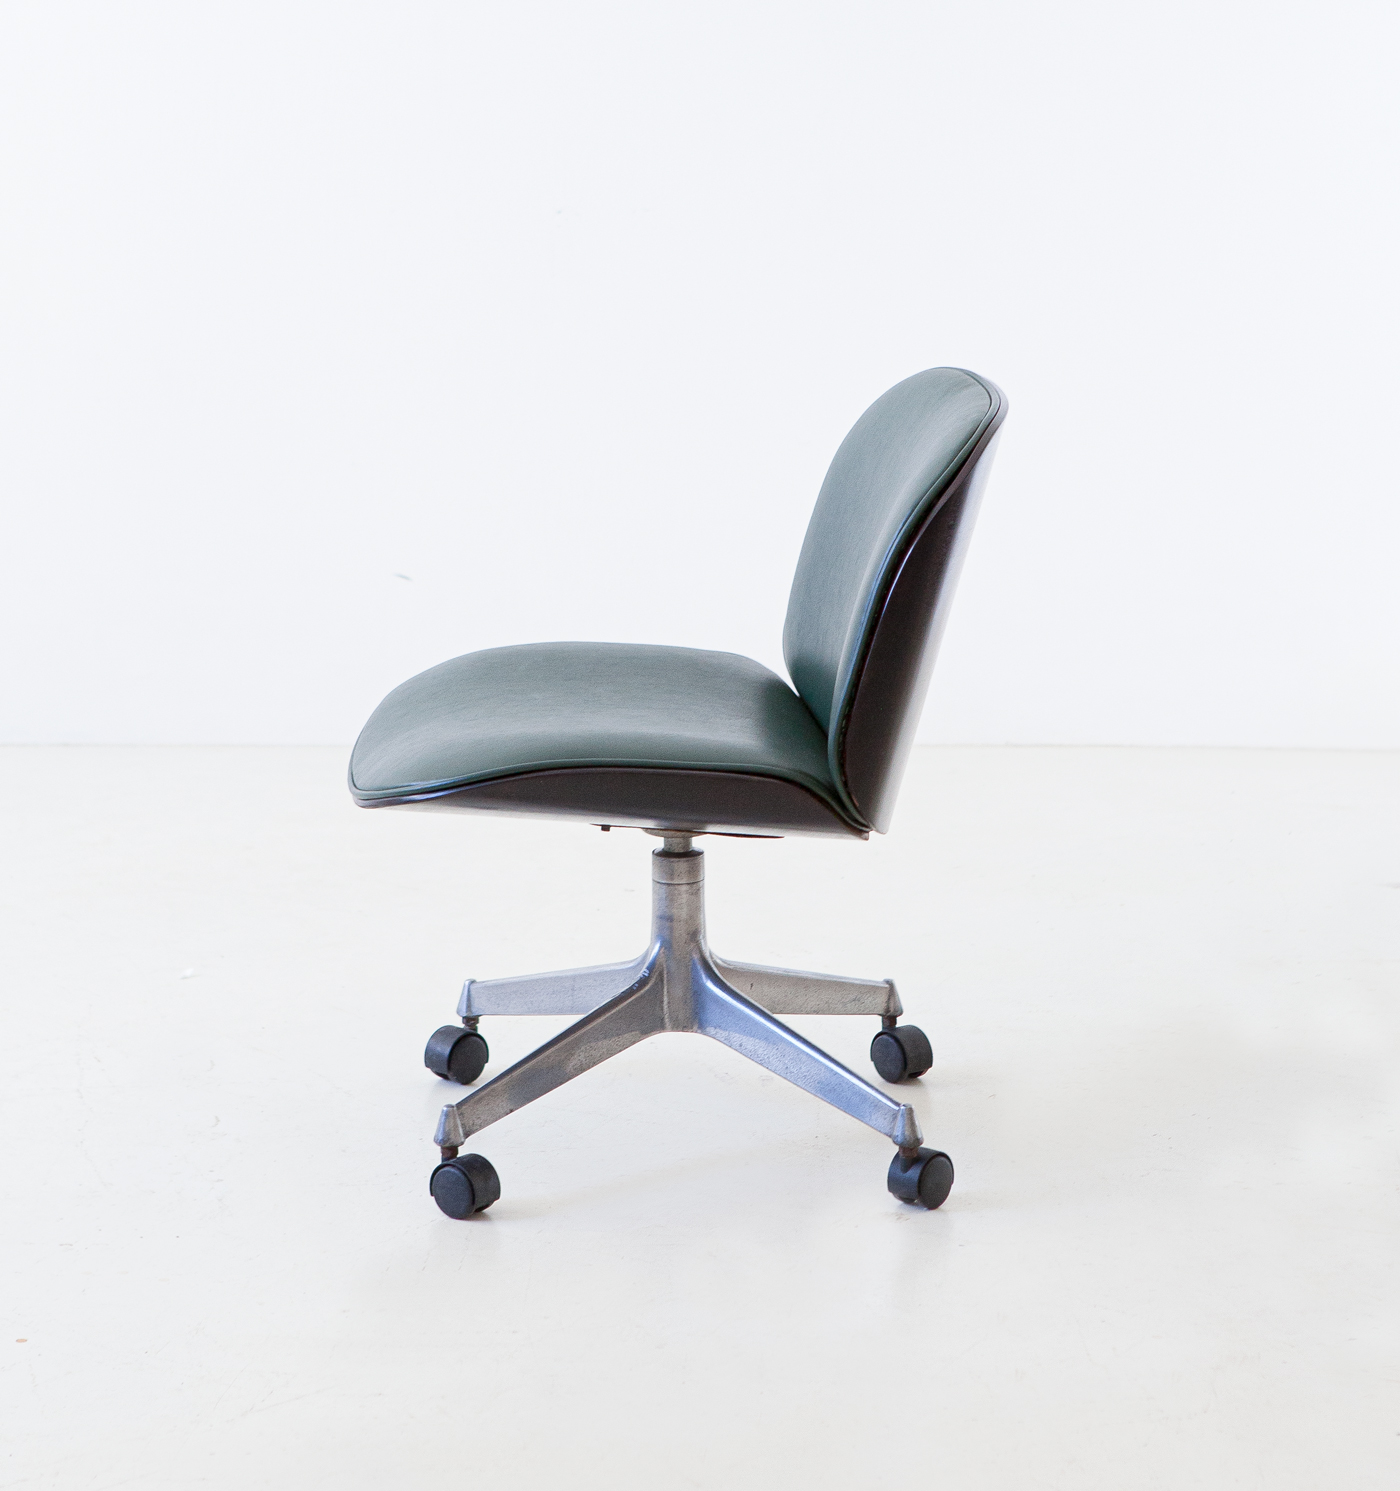 1950s-swivel-desk-chair-by-Ico-Parisi-for-M.i.M.-1-se331